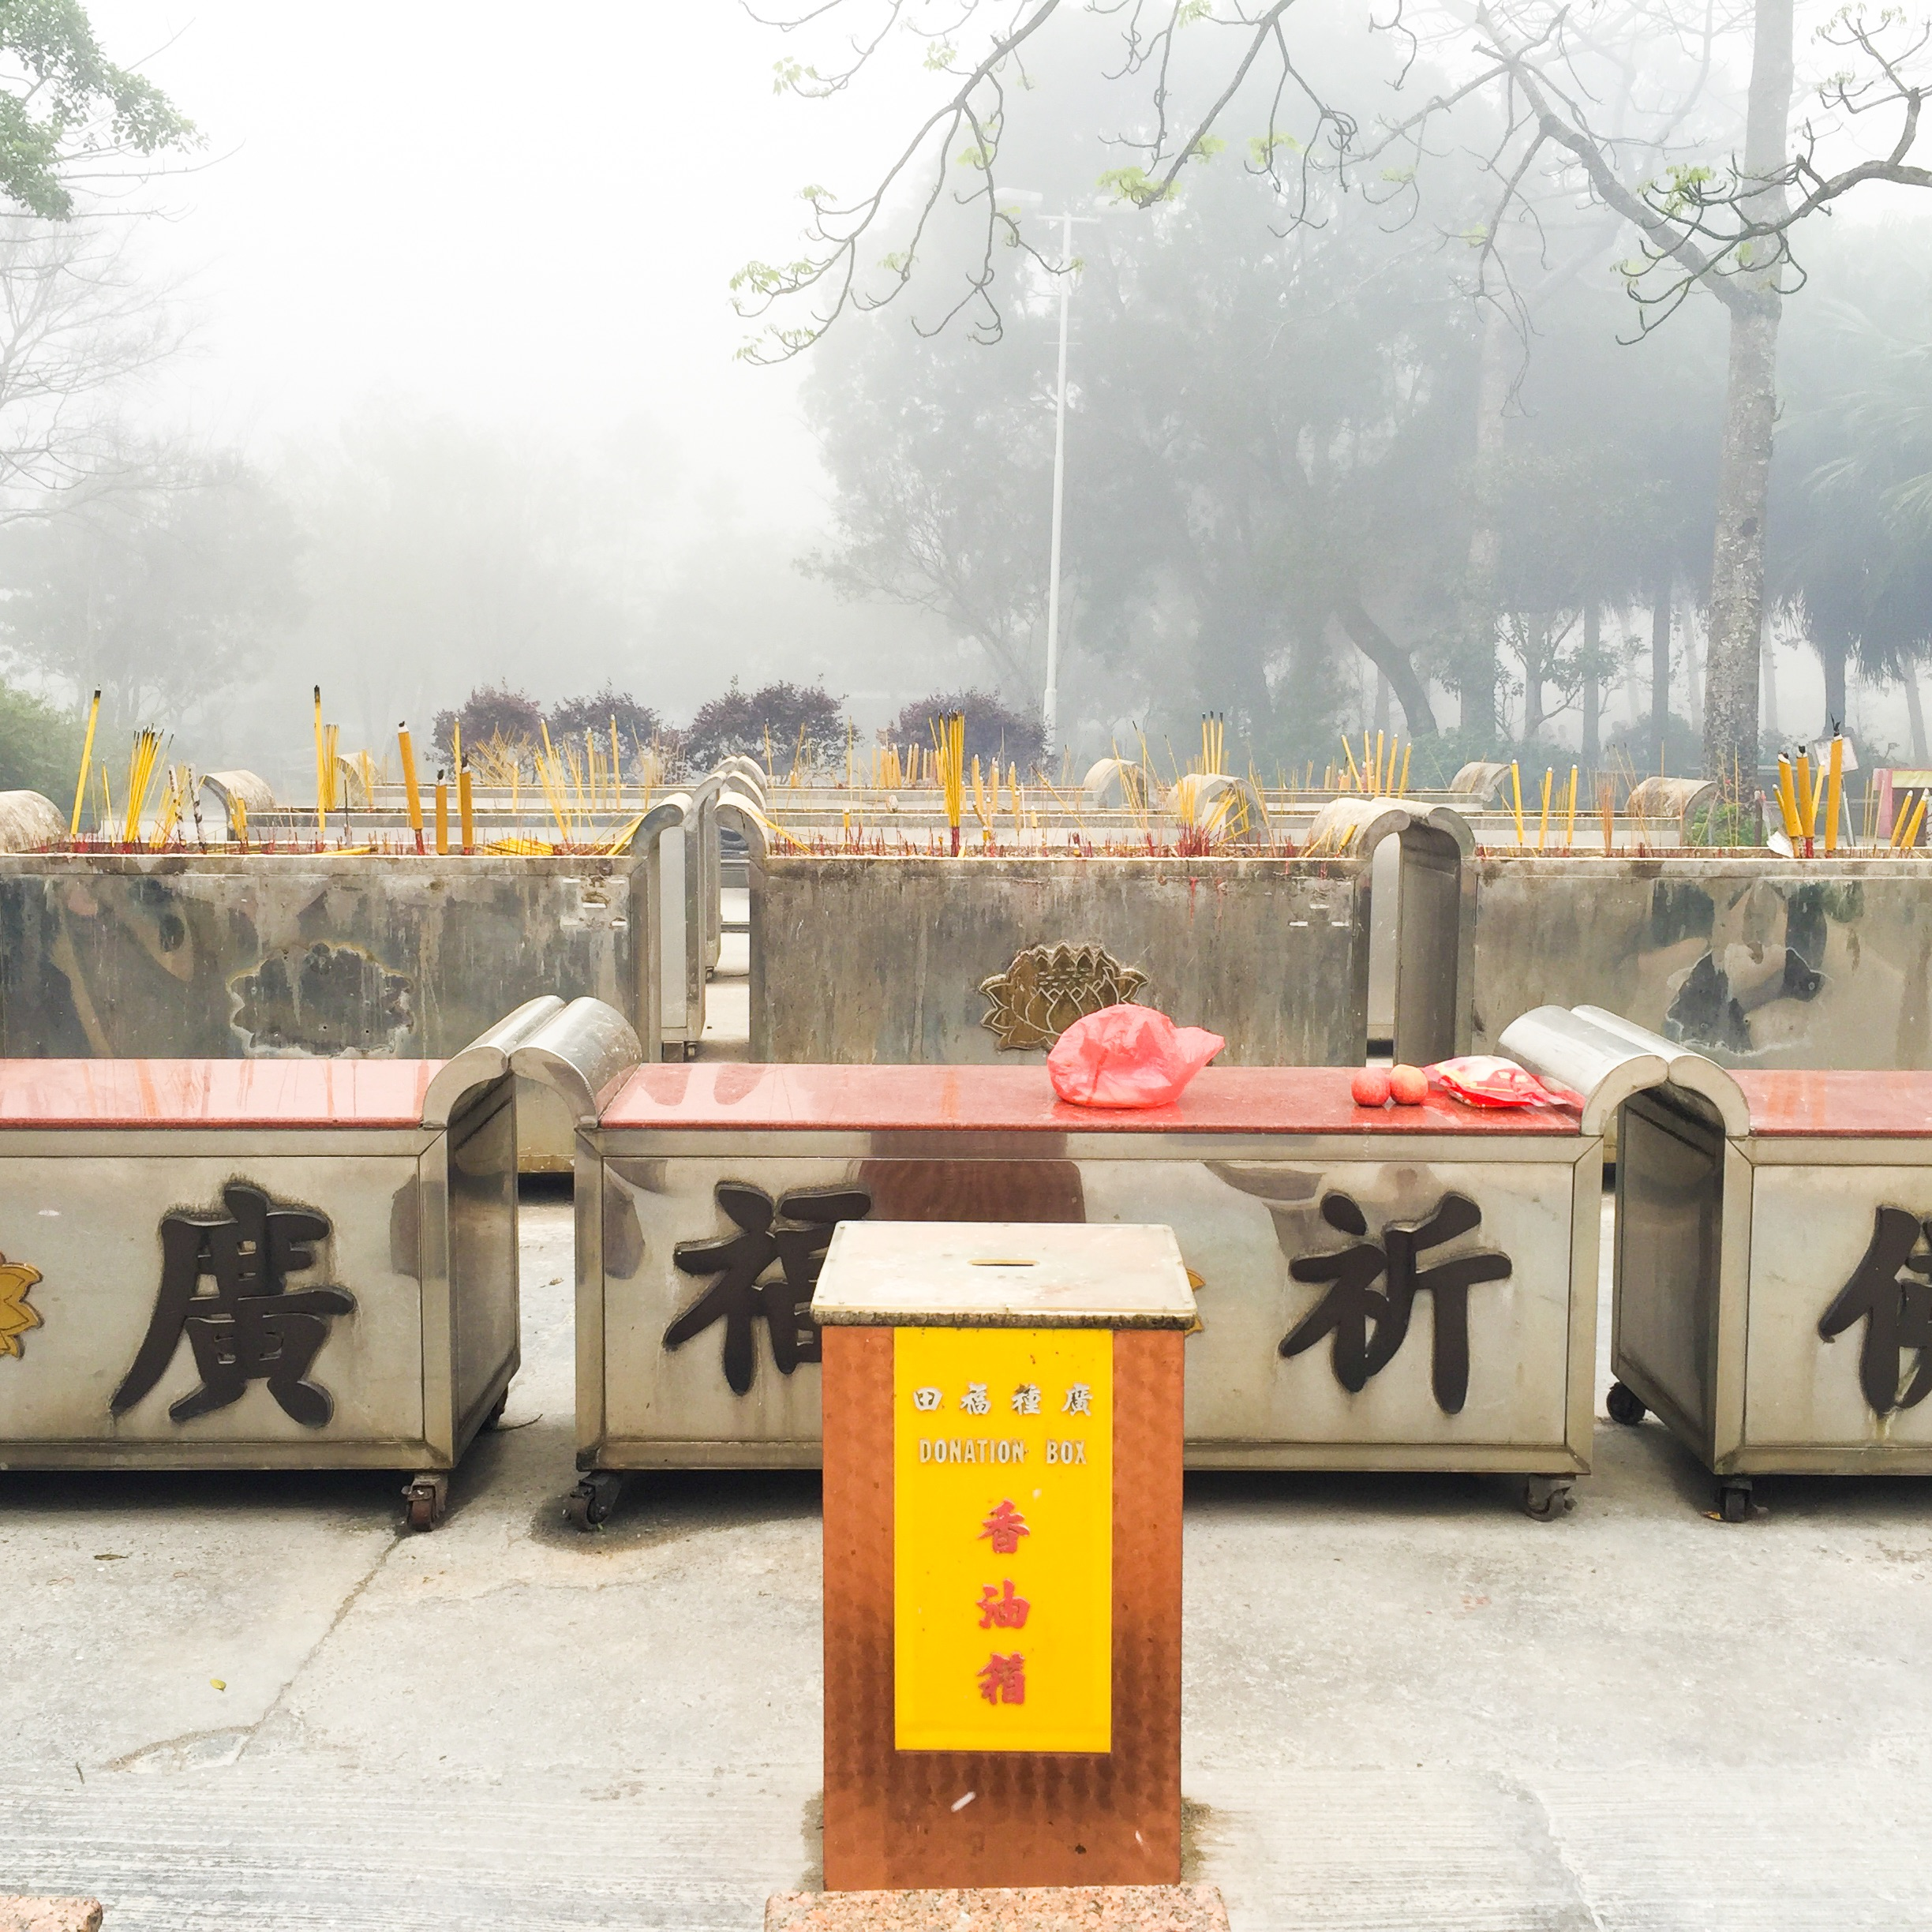 Essence shrines to offer prayers to Buddha